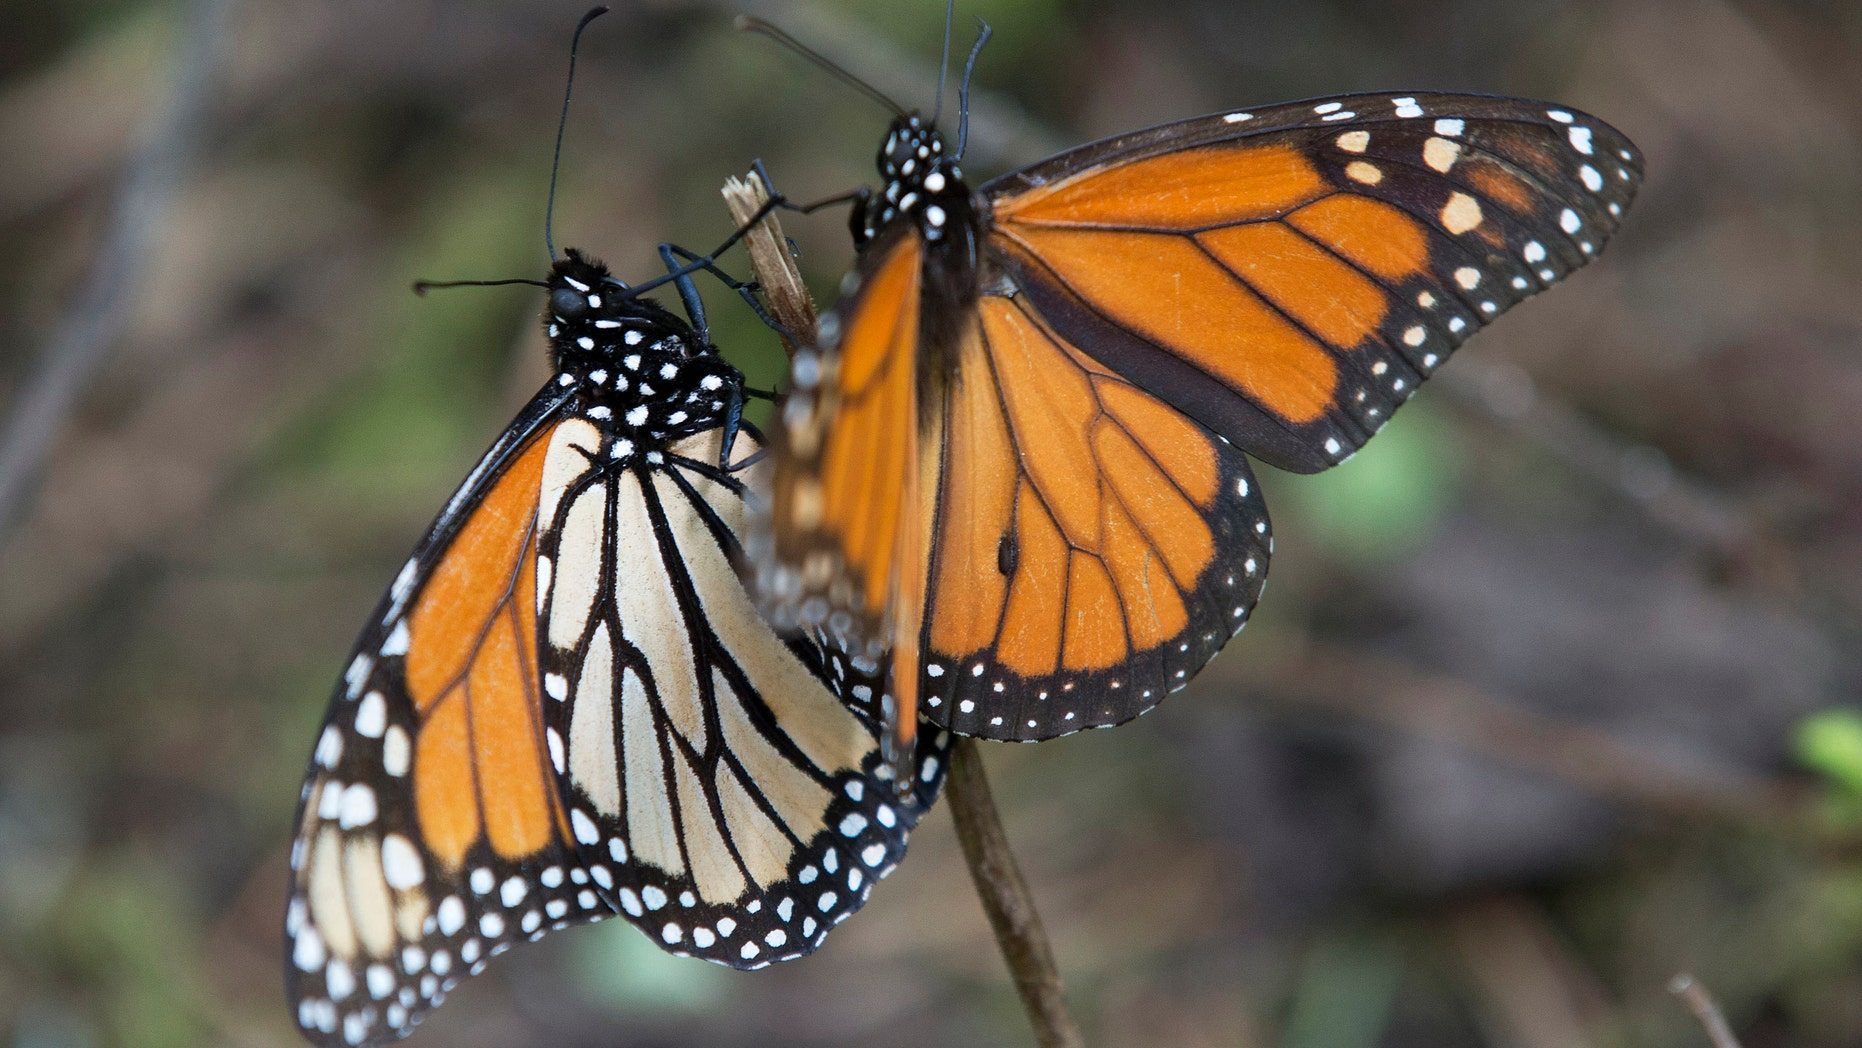 FILE - In this Jan. 4, 2015 file photo, Monarch butterflies perch on a twig at the Piedra Herrada sanctuary, near Valle del Bravo, Mexico. The number of Monarch butterflies that reached wintering grounds in Mexico has rebounded 69 percent from last yearâs lowest-on-record levels, but their numbers remain very low, according to a formal census by Mexican environmental authorities and scientists released Tuesday, Jan. 27, 2015. (AP Photo/Rebecca Blackwell, File)